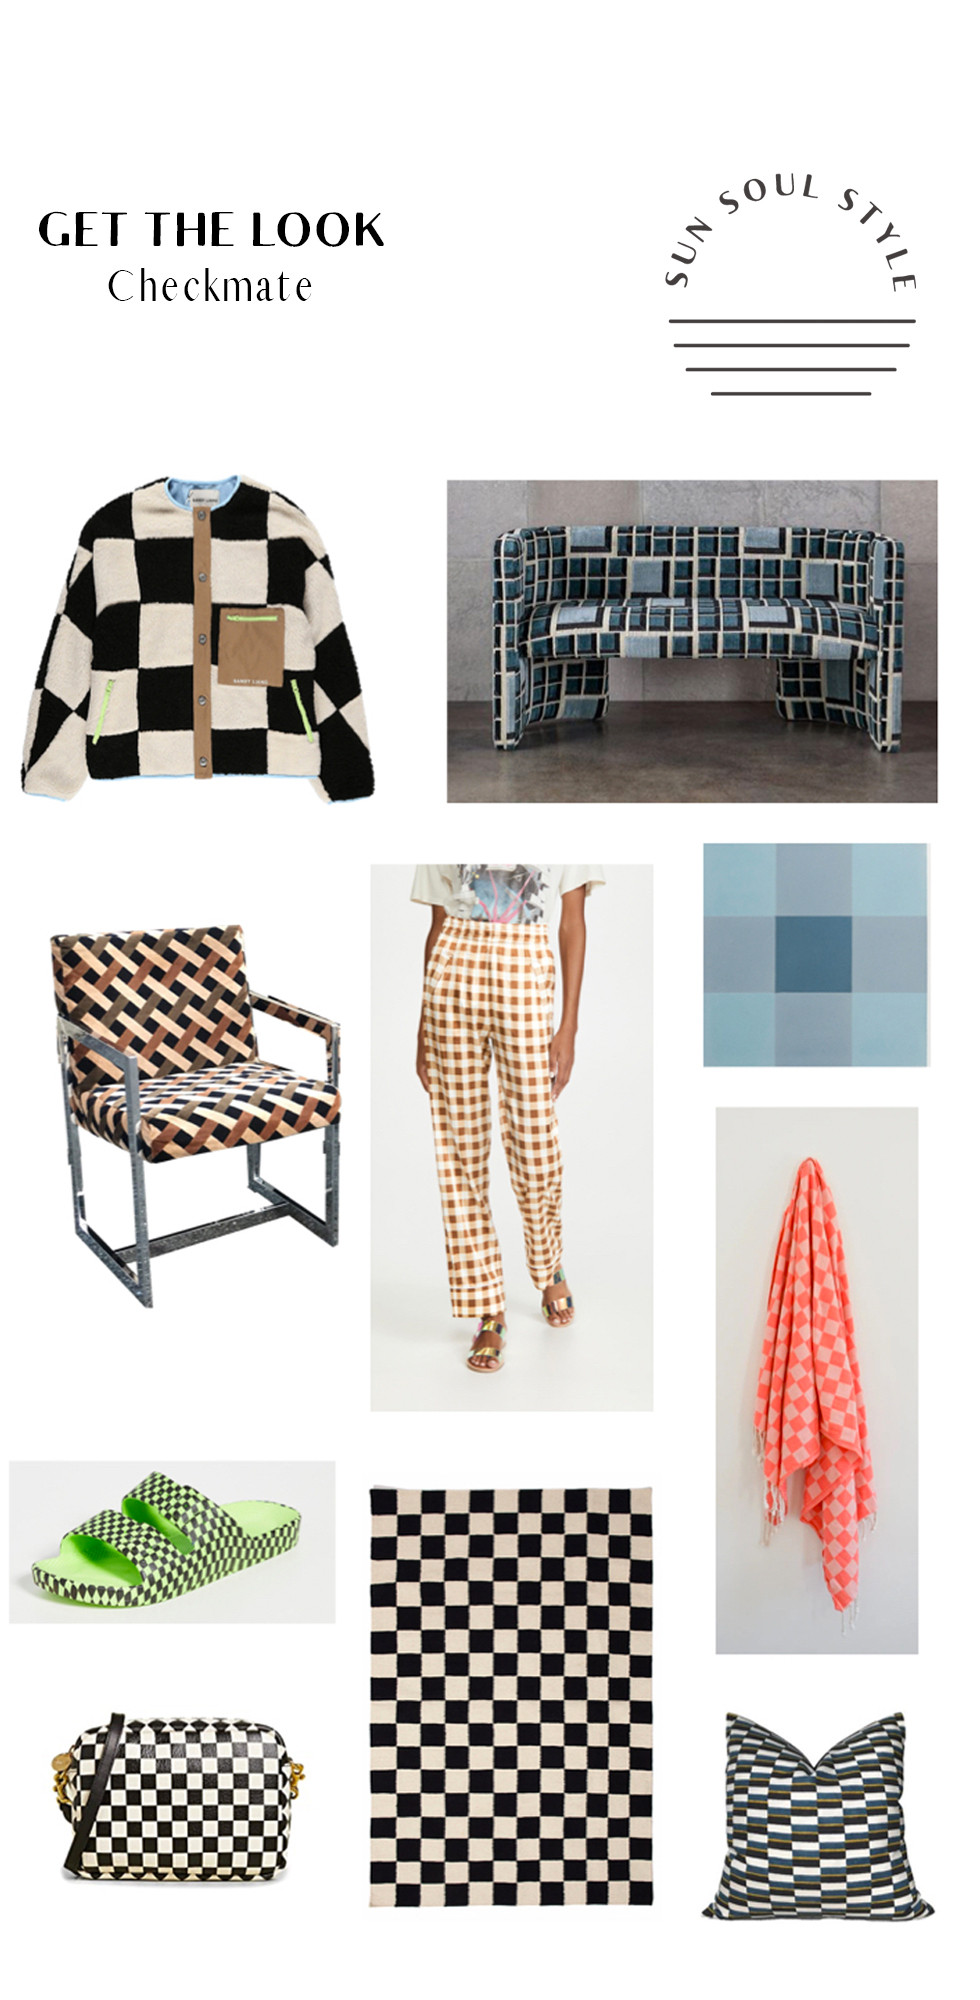 Get the look checkerboard print trend